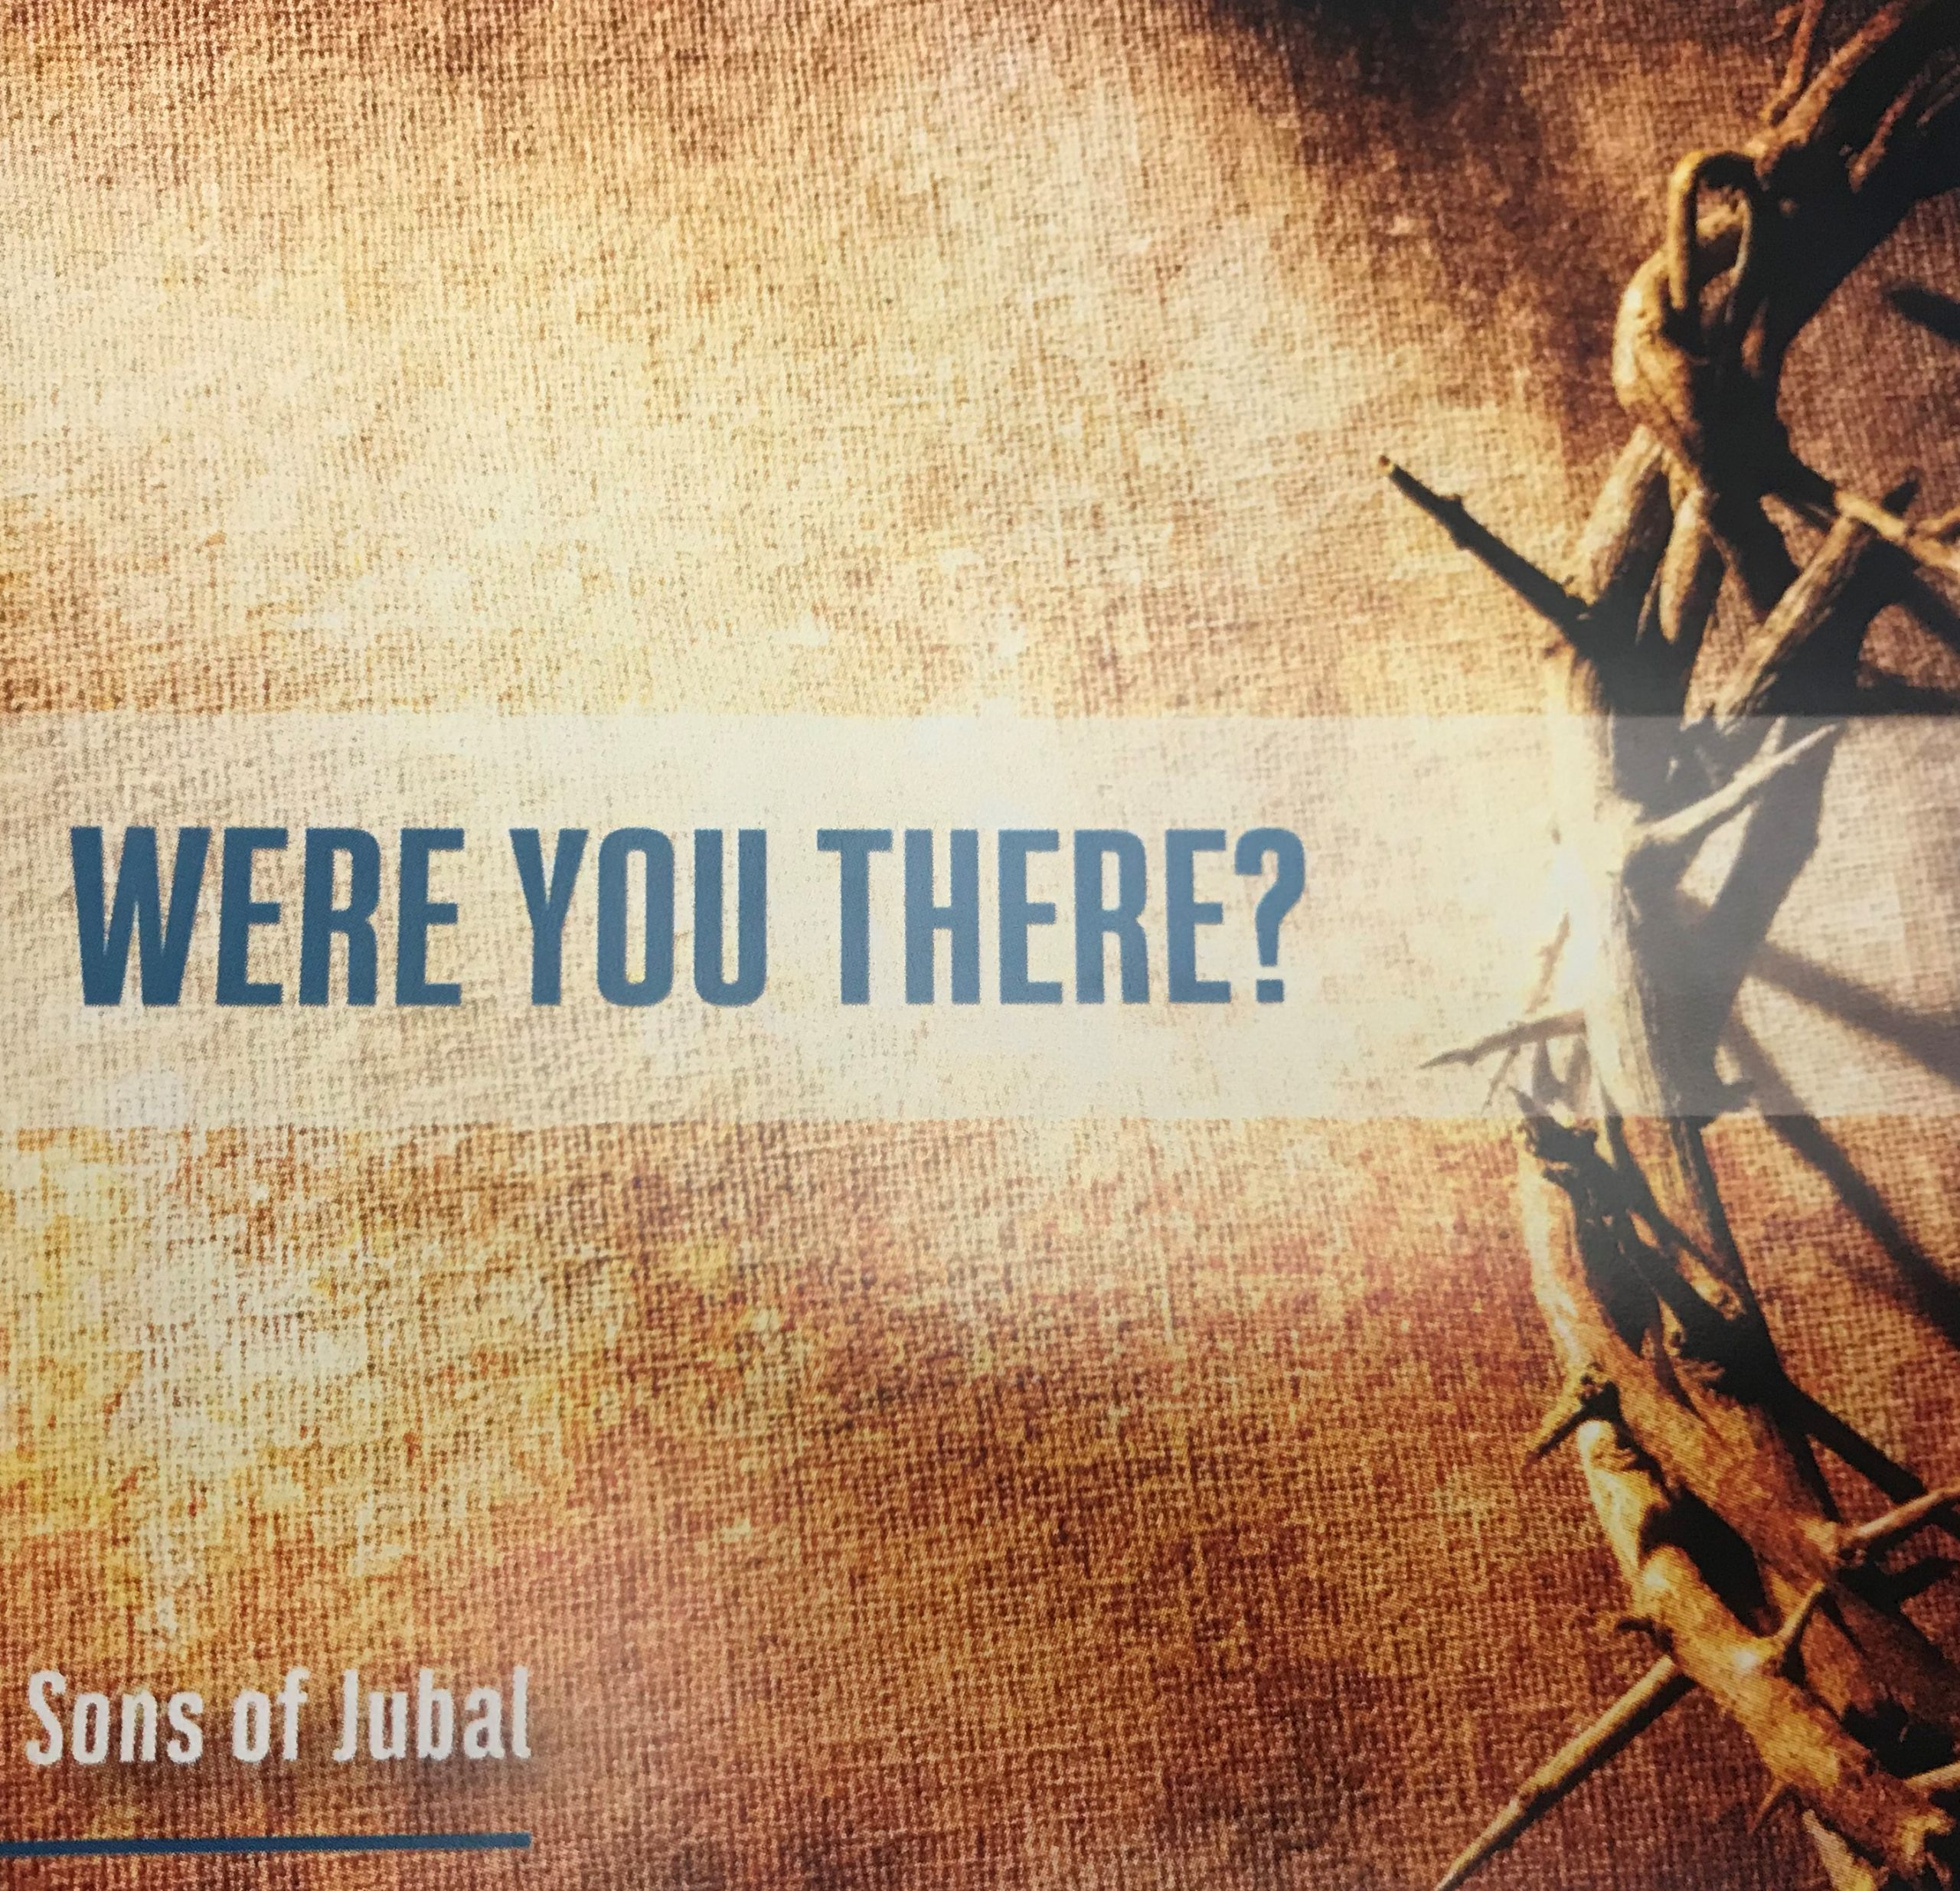 Were You There | The Sons of Jubal